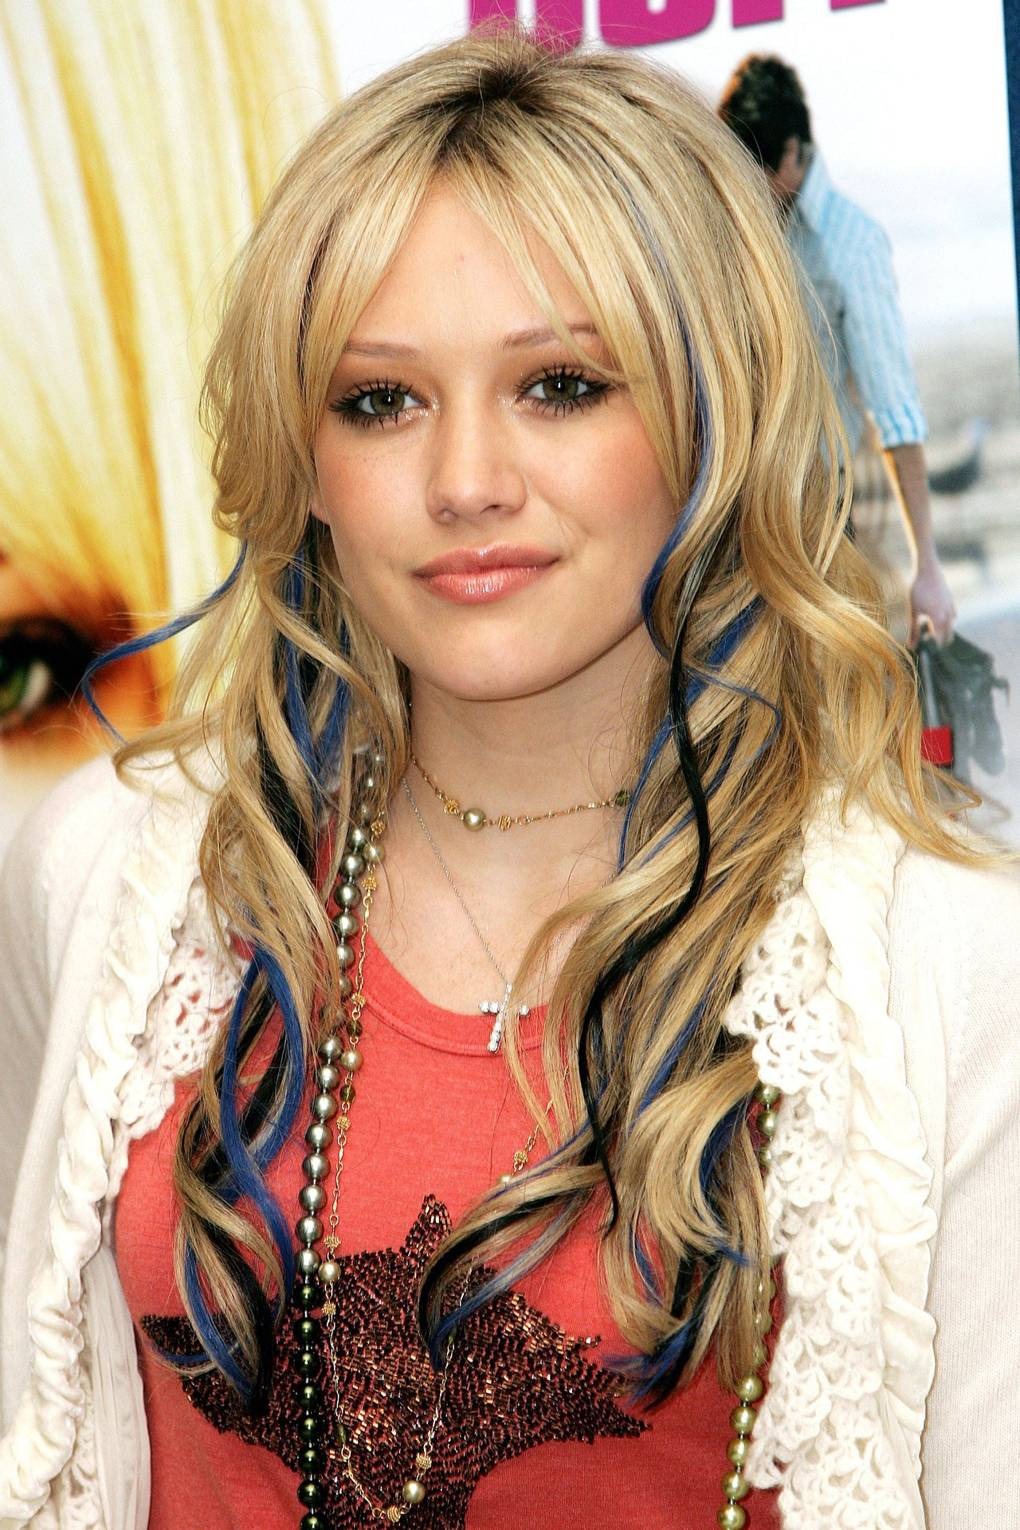 Beauty trends 2000s - Best Noughties makeup and hair